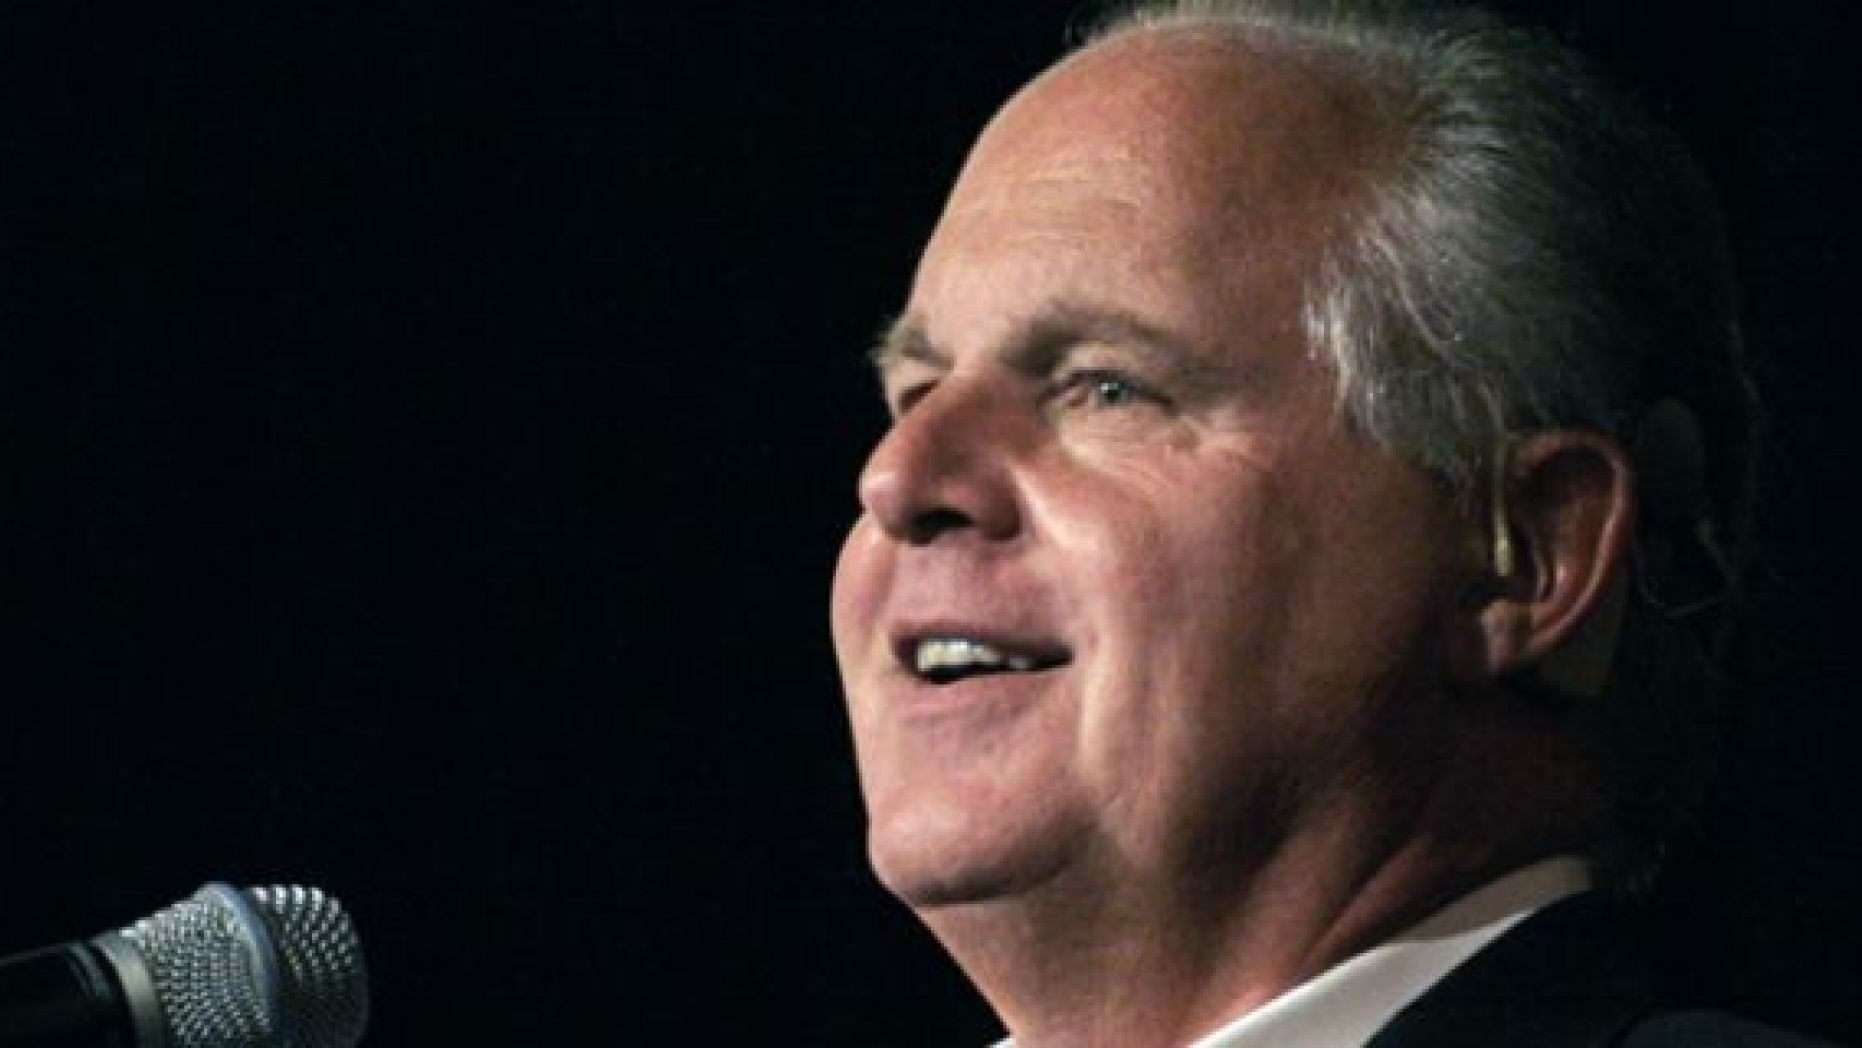 Radio talk show host and conservative commentator Rush Limbaugh speaks in Novi, Michigan. (Photo by Bill Pugliano/Getty Images)